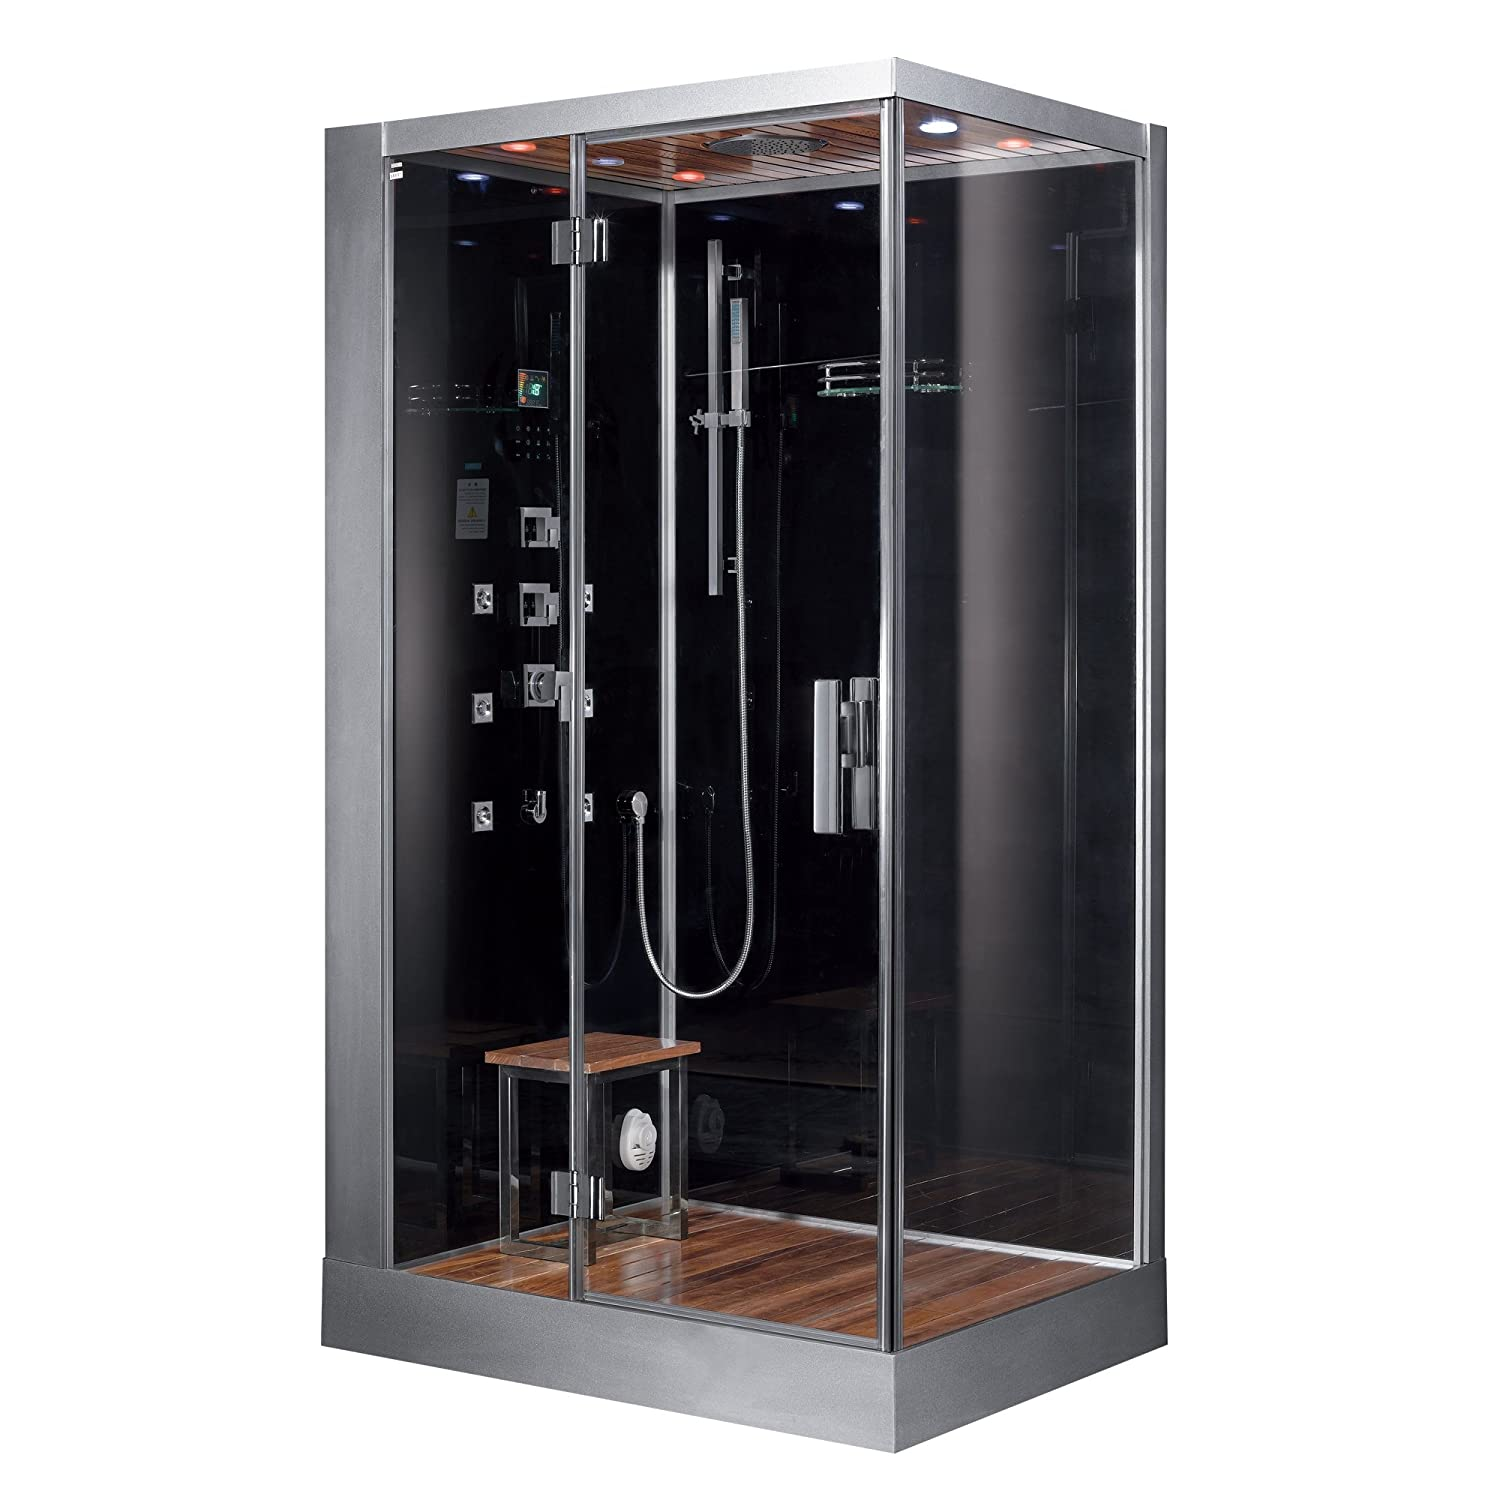 Ariel Platinum DZ959F8 BLK L Steam Shower Left Configuration 47